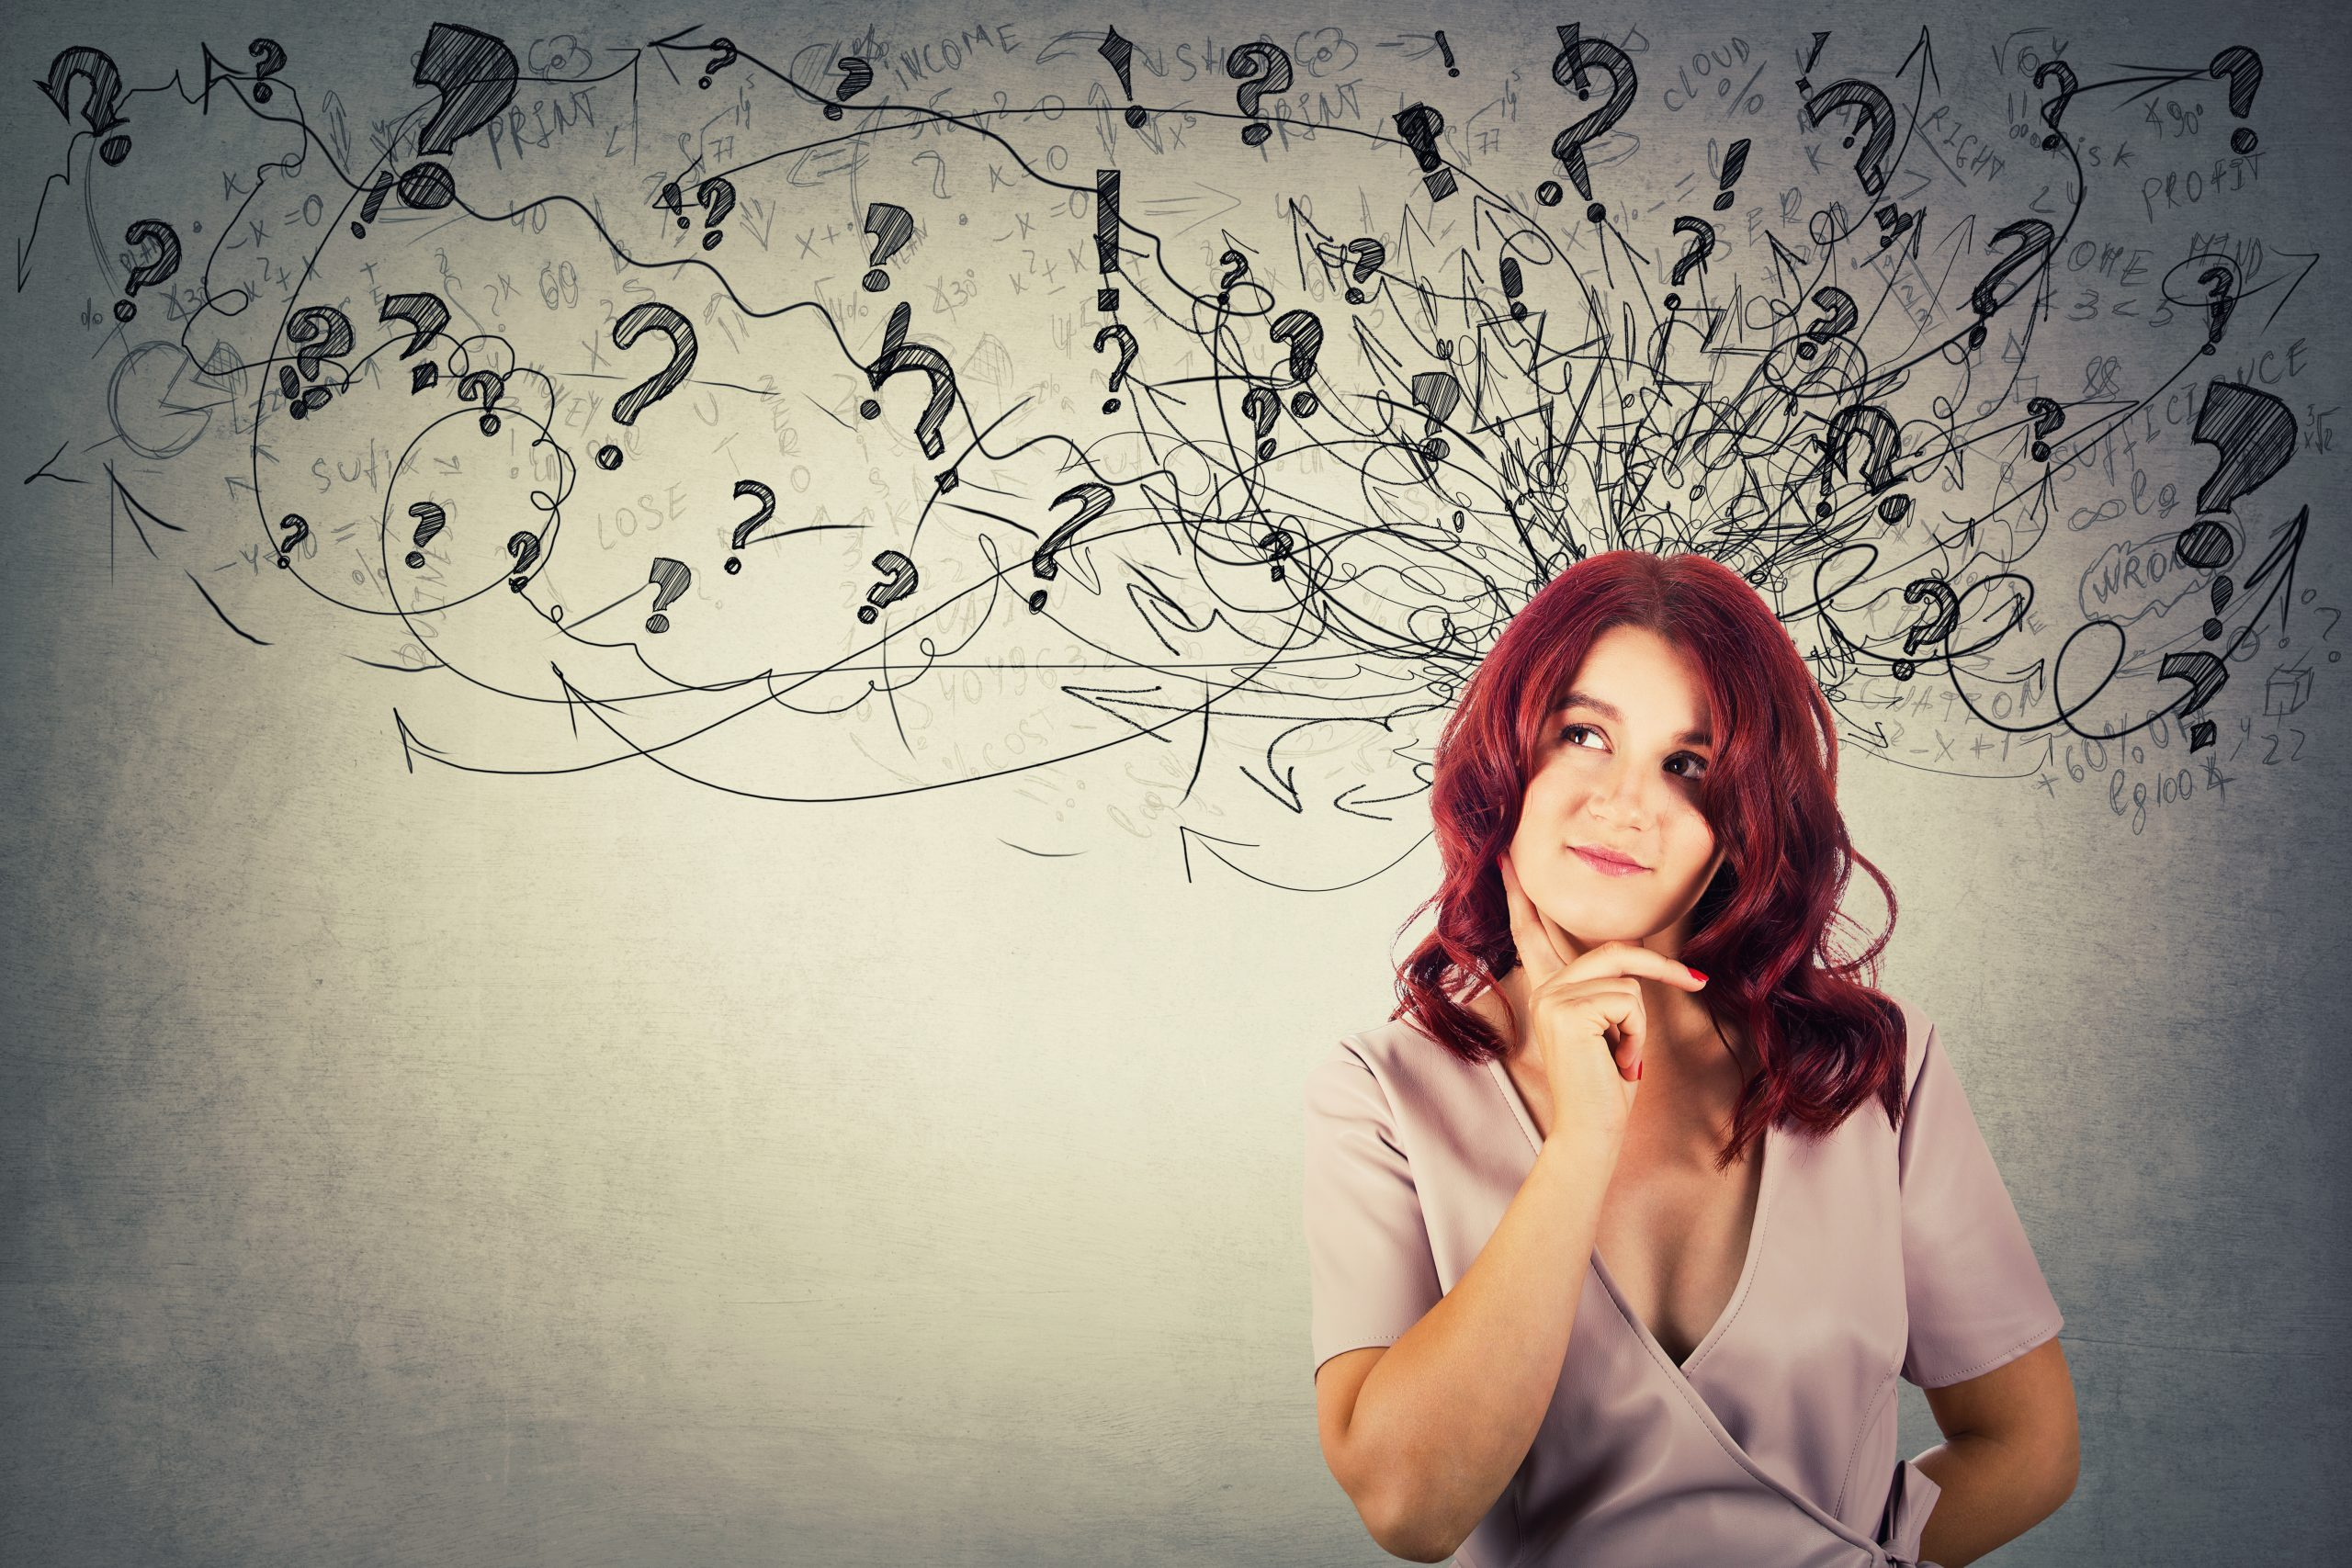 Young redhead pensive woman having questions holding hand under chin thoughtful looking at arrows and mess going out of head.